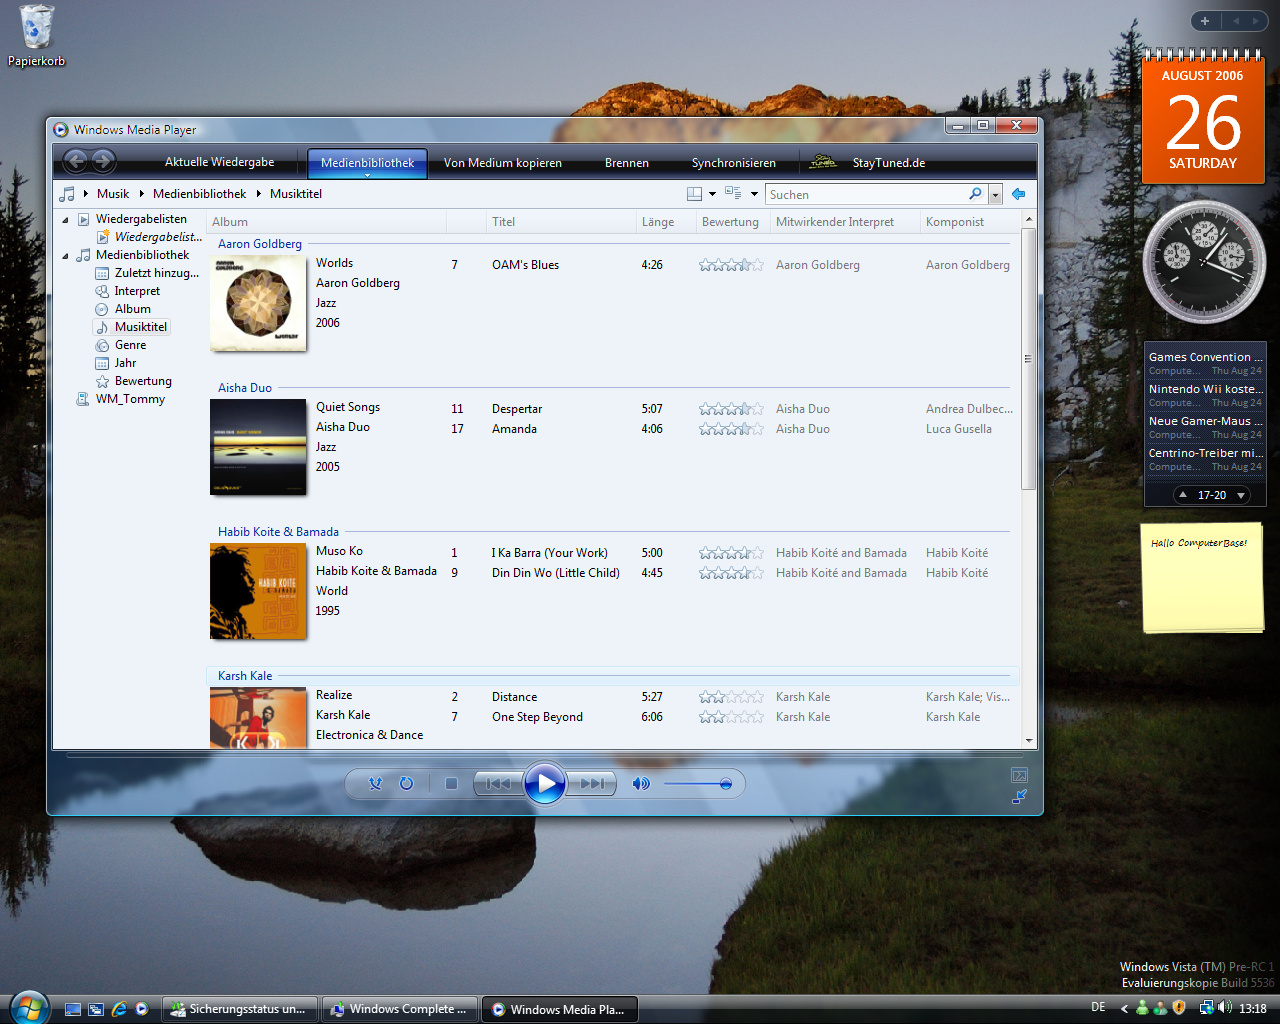 Windows Vista Build 5536 - Media Player 11